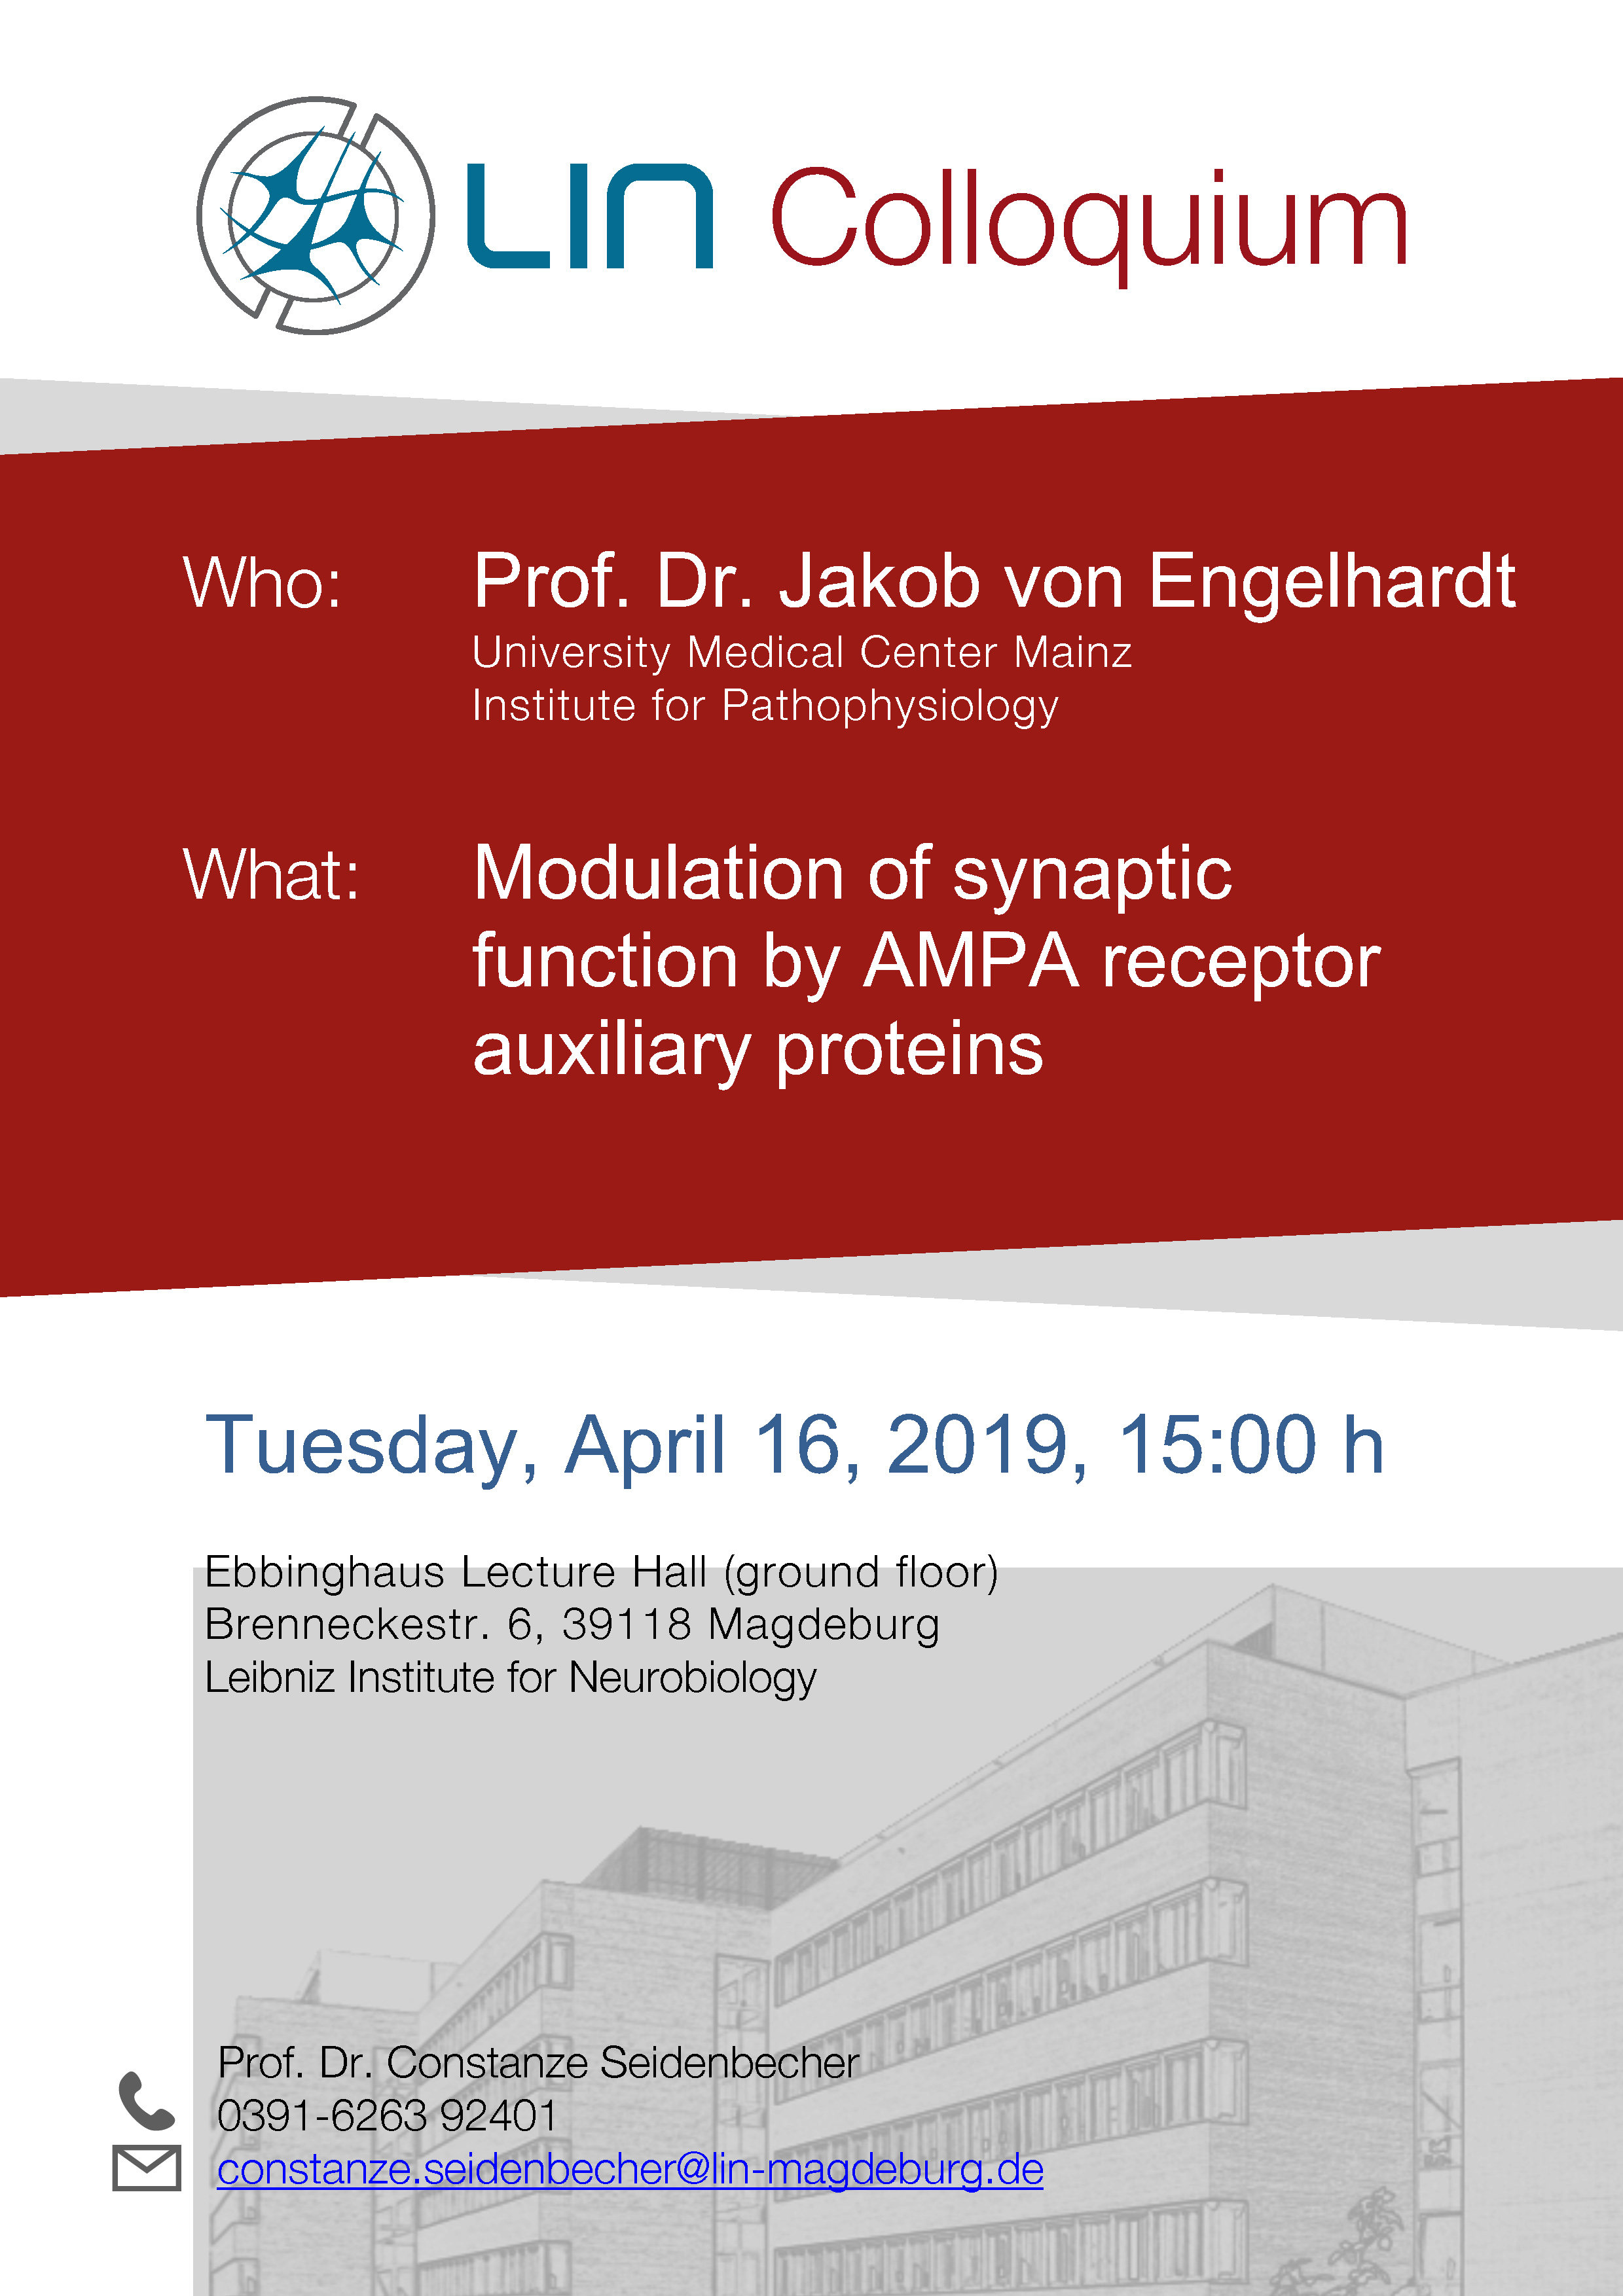 LIN Colloquium: Modulation of synaptic function by AMPA receptor auxiliary proteins @ Ebbinghaus Lecture Hall,Leibniz Institute for Neurobiology